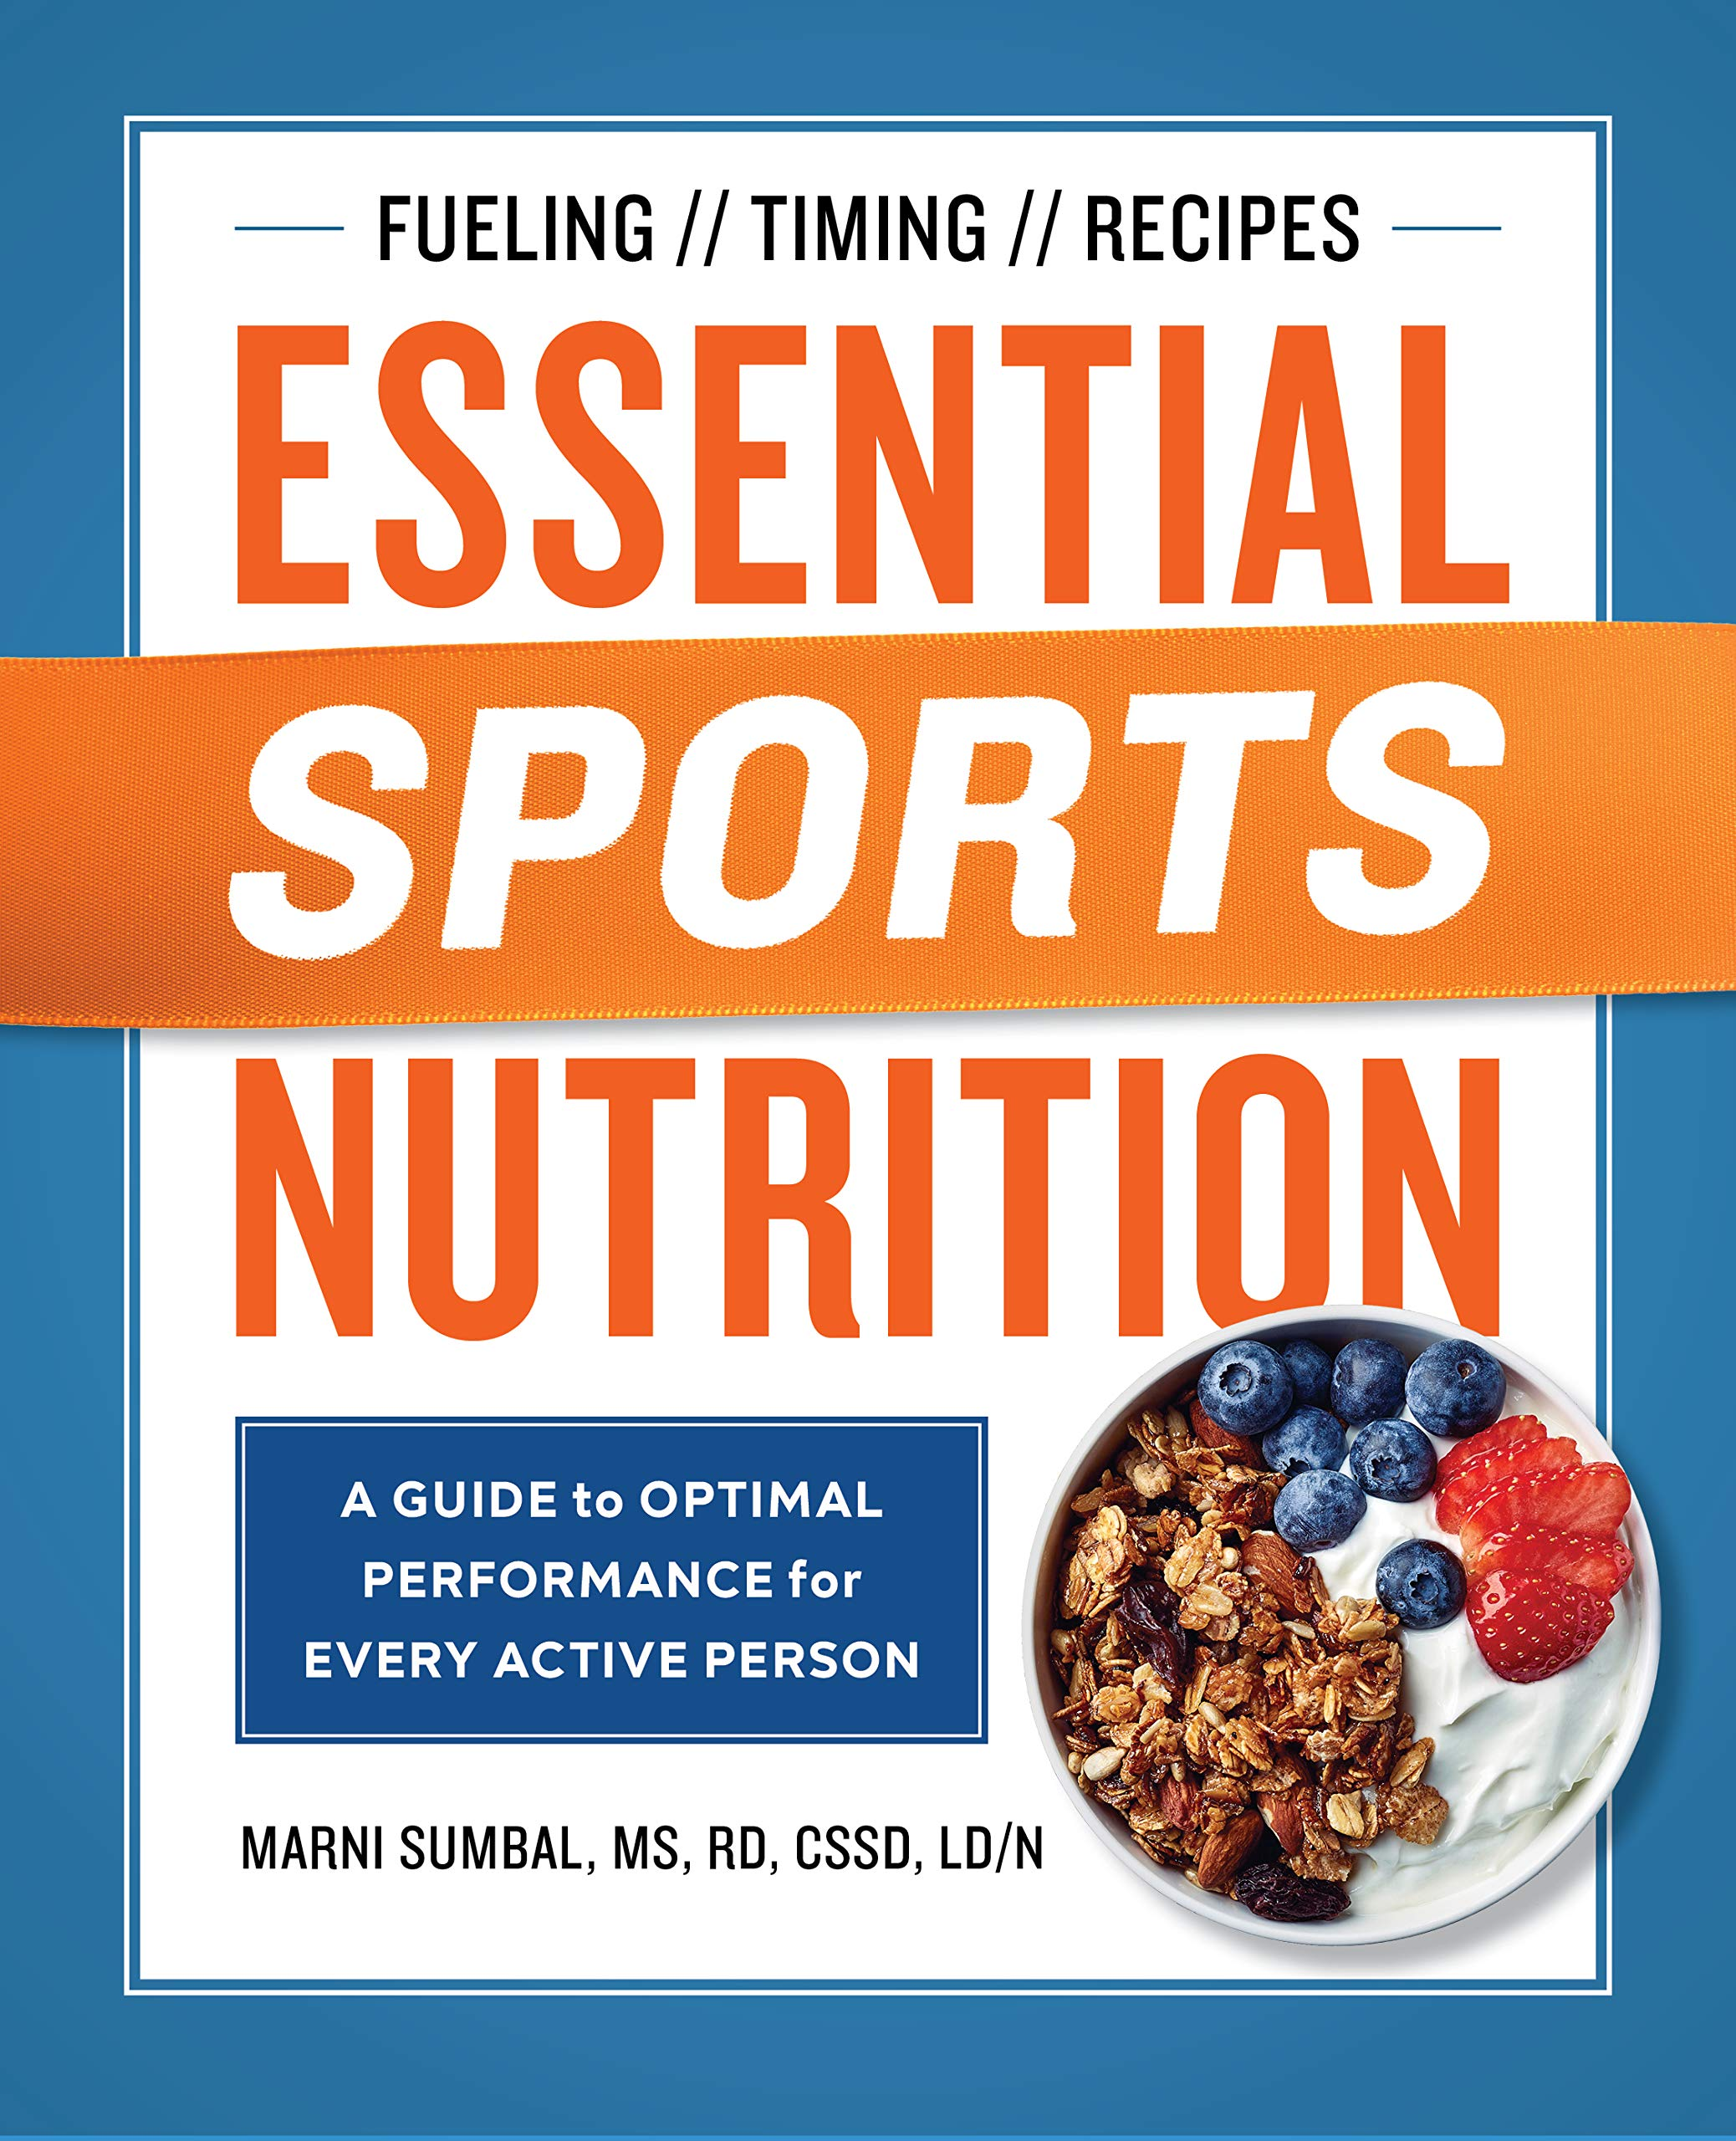 Essential Sports Nutrition: A Guide to Optimal Performance for Every Active Person